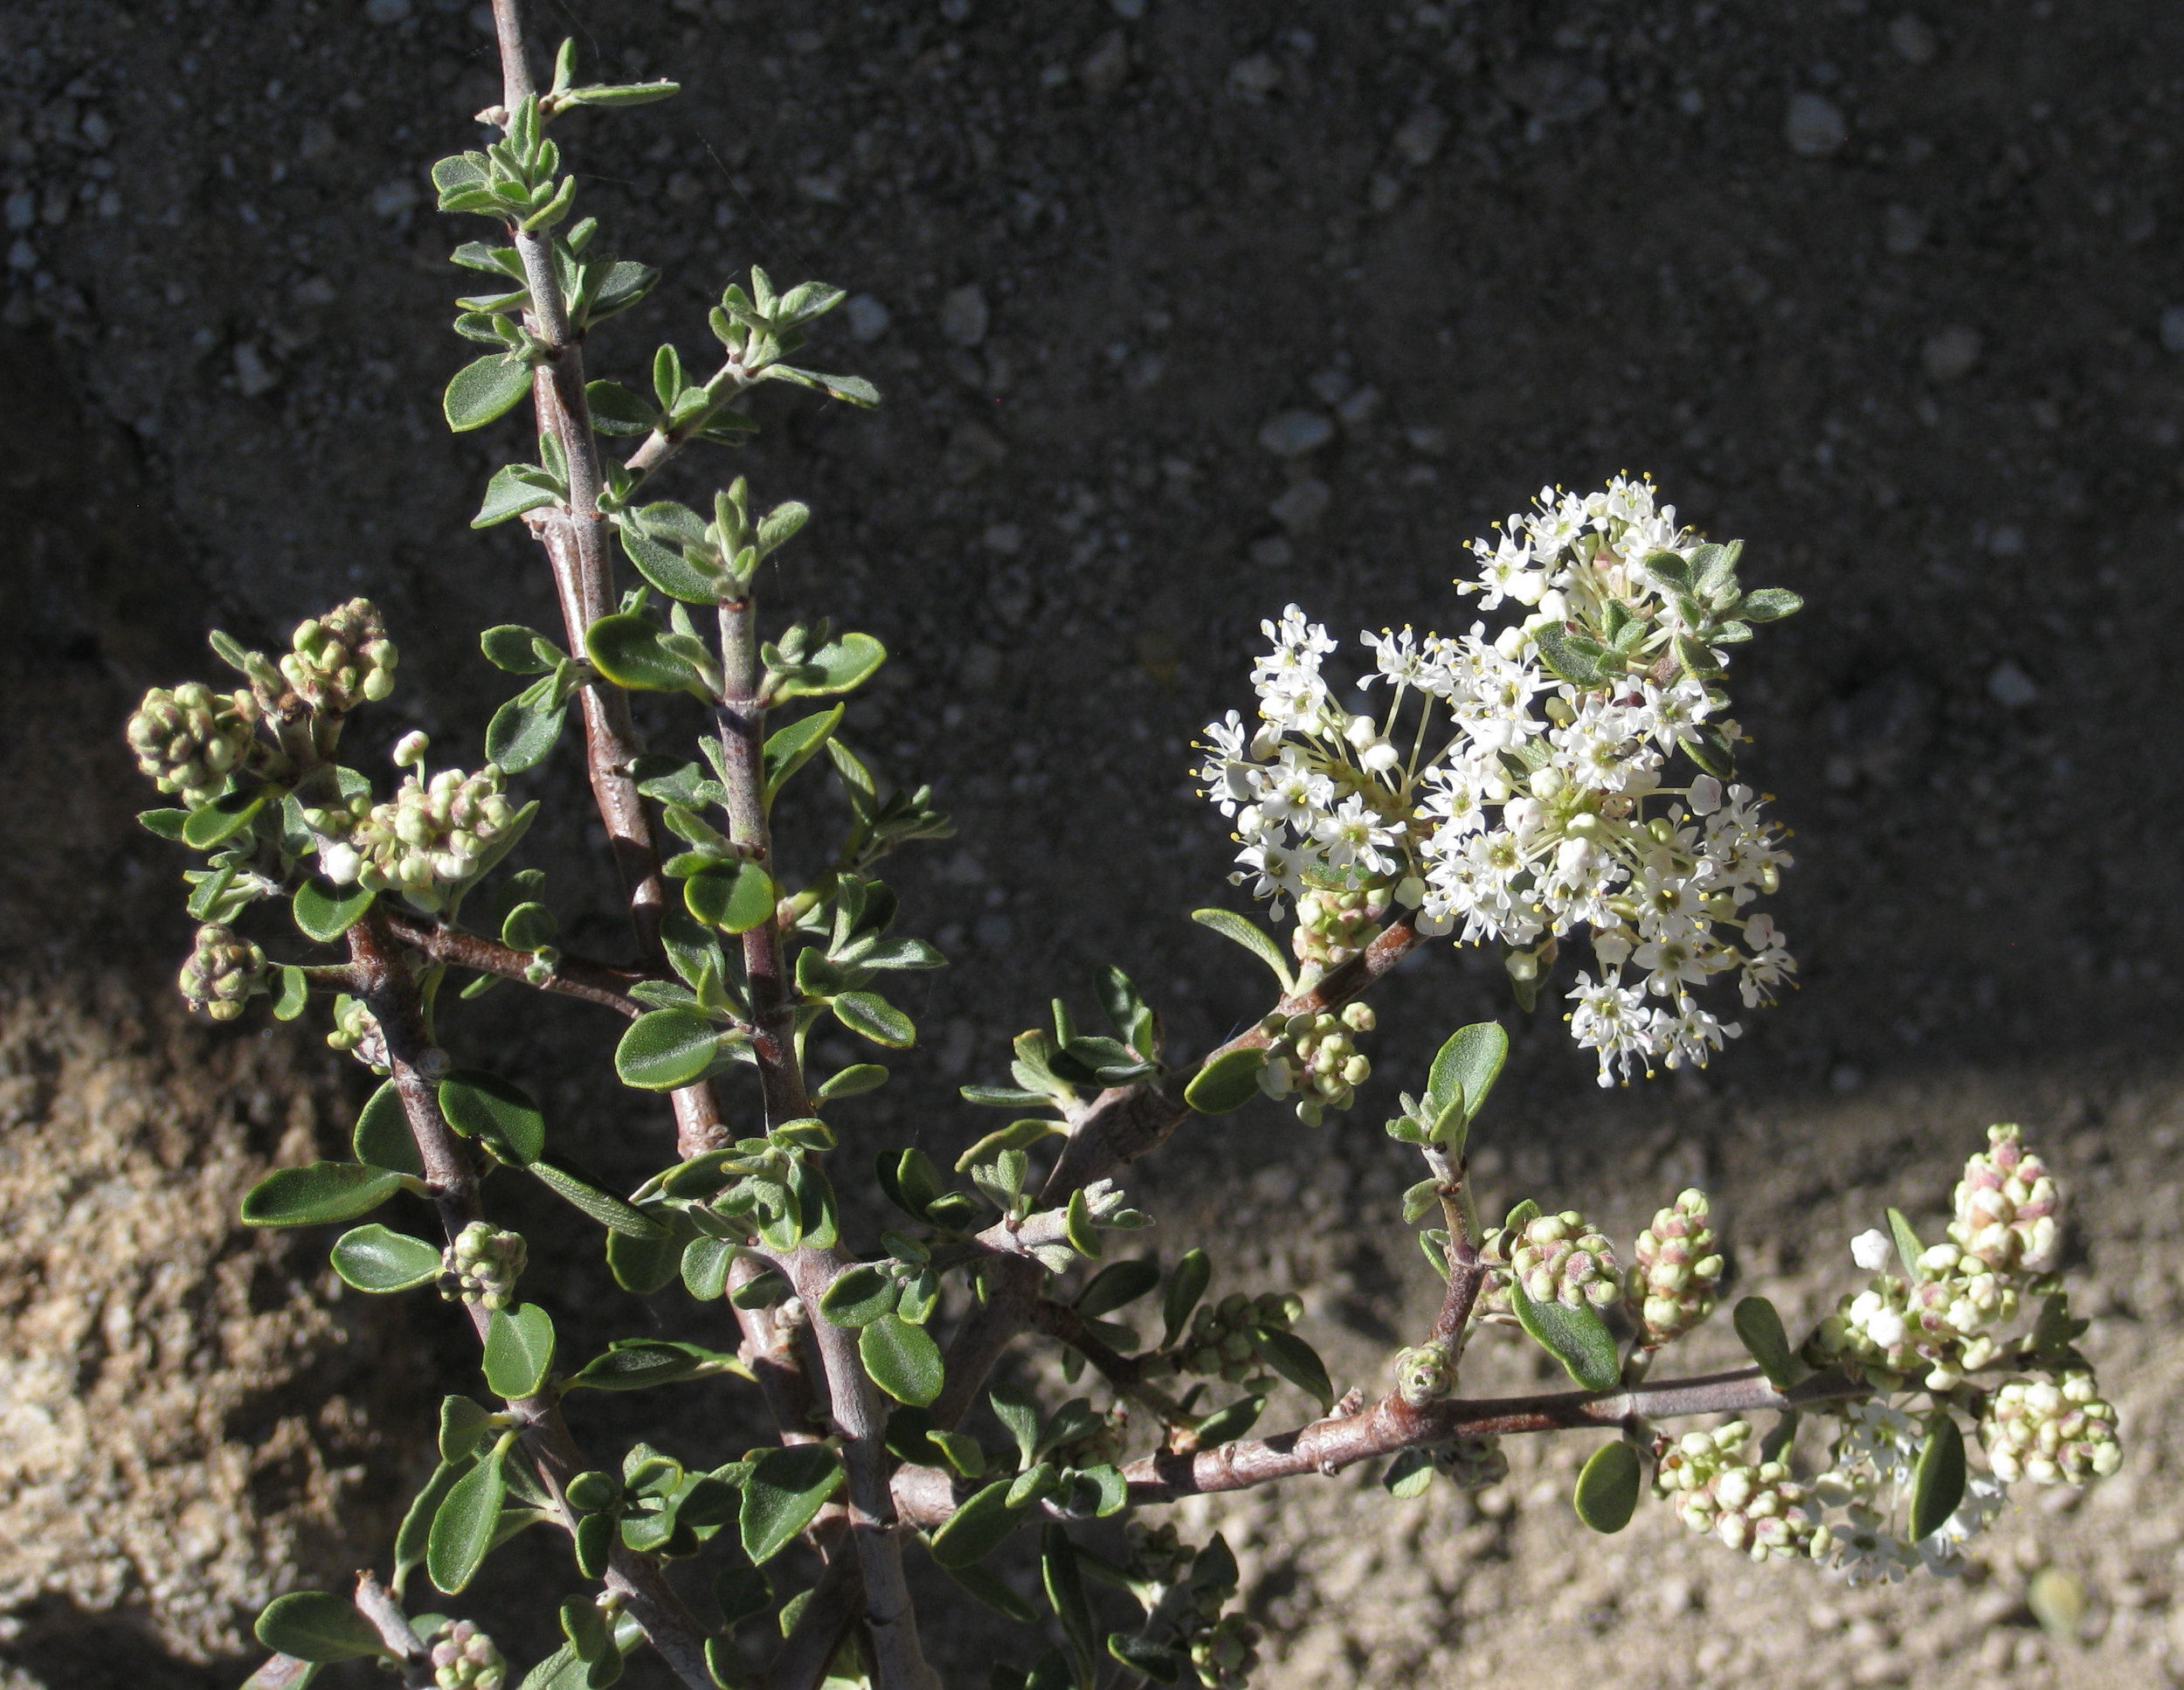 desert ceanoththus(ceanothus greggii) - Larval food plant for a mind boggling number of butterfly species. Excellent nectar plant.